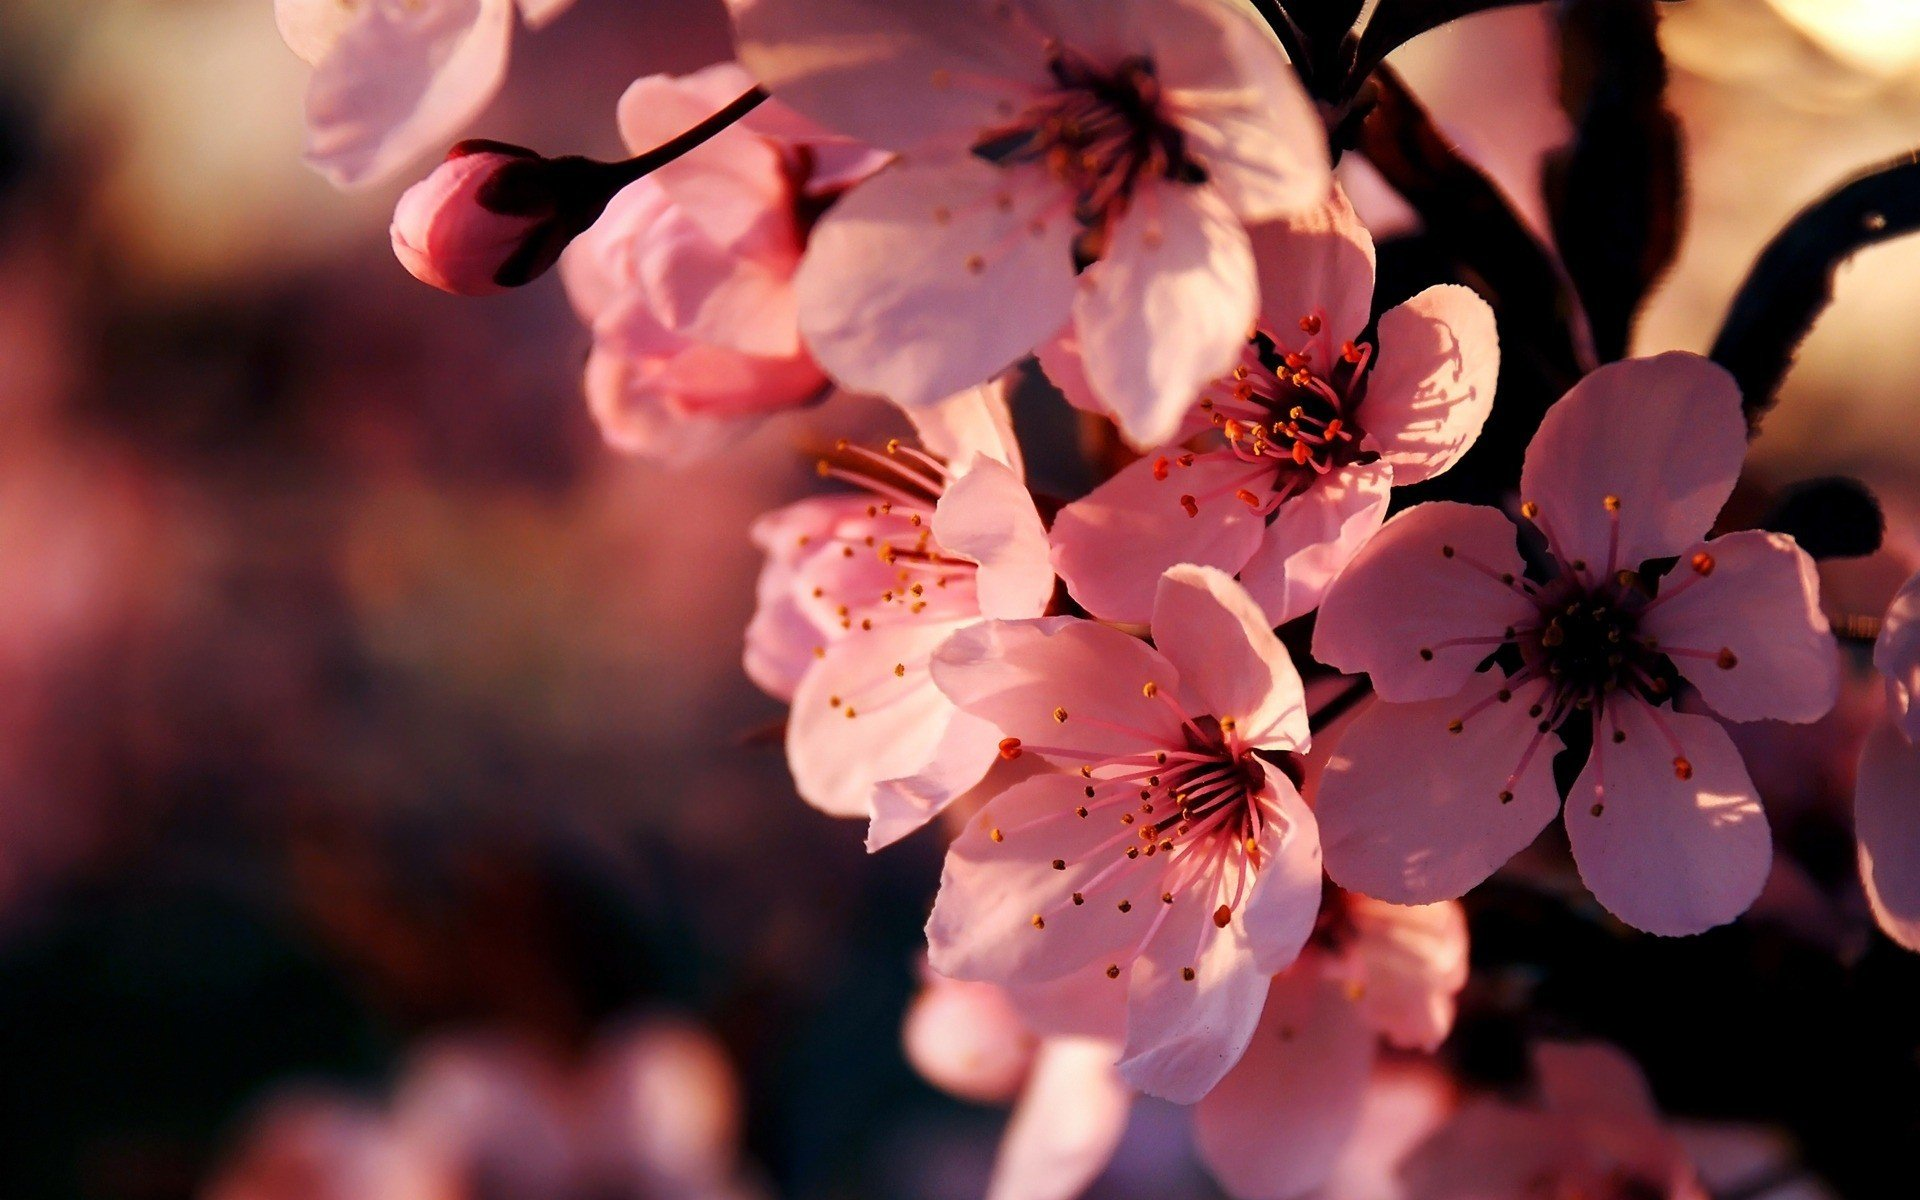 HD Wallpaper Pink Flowers - WallpaperSafari